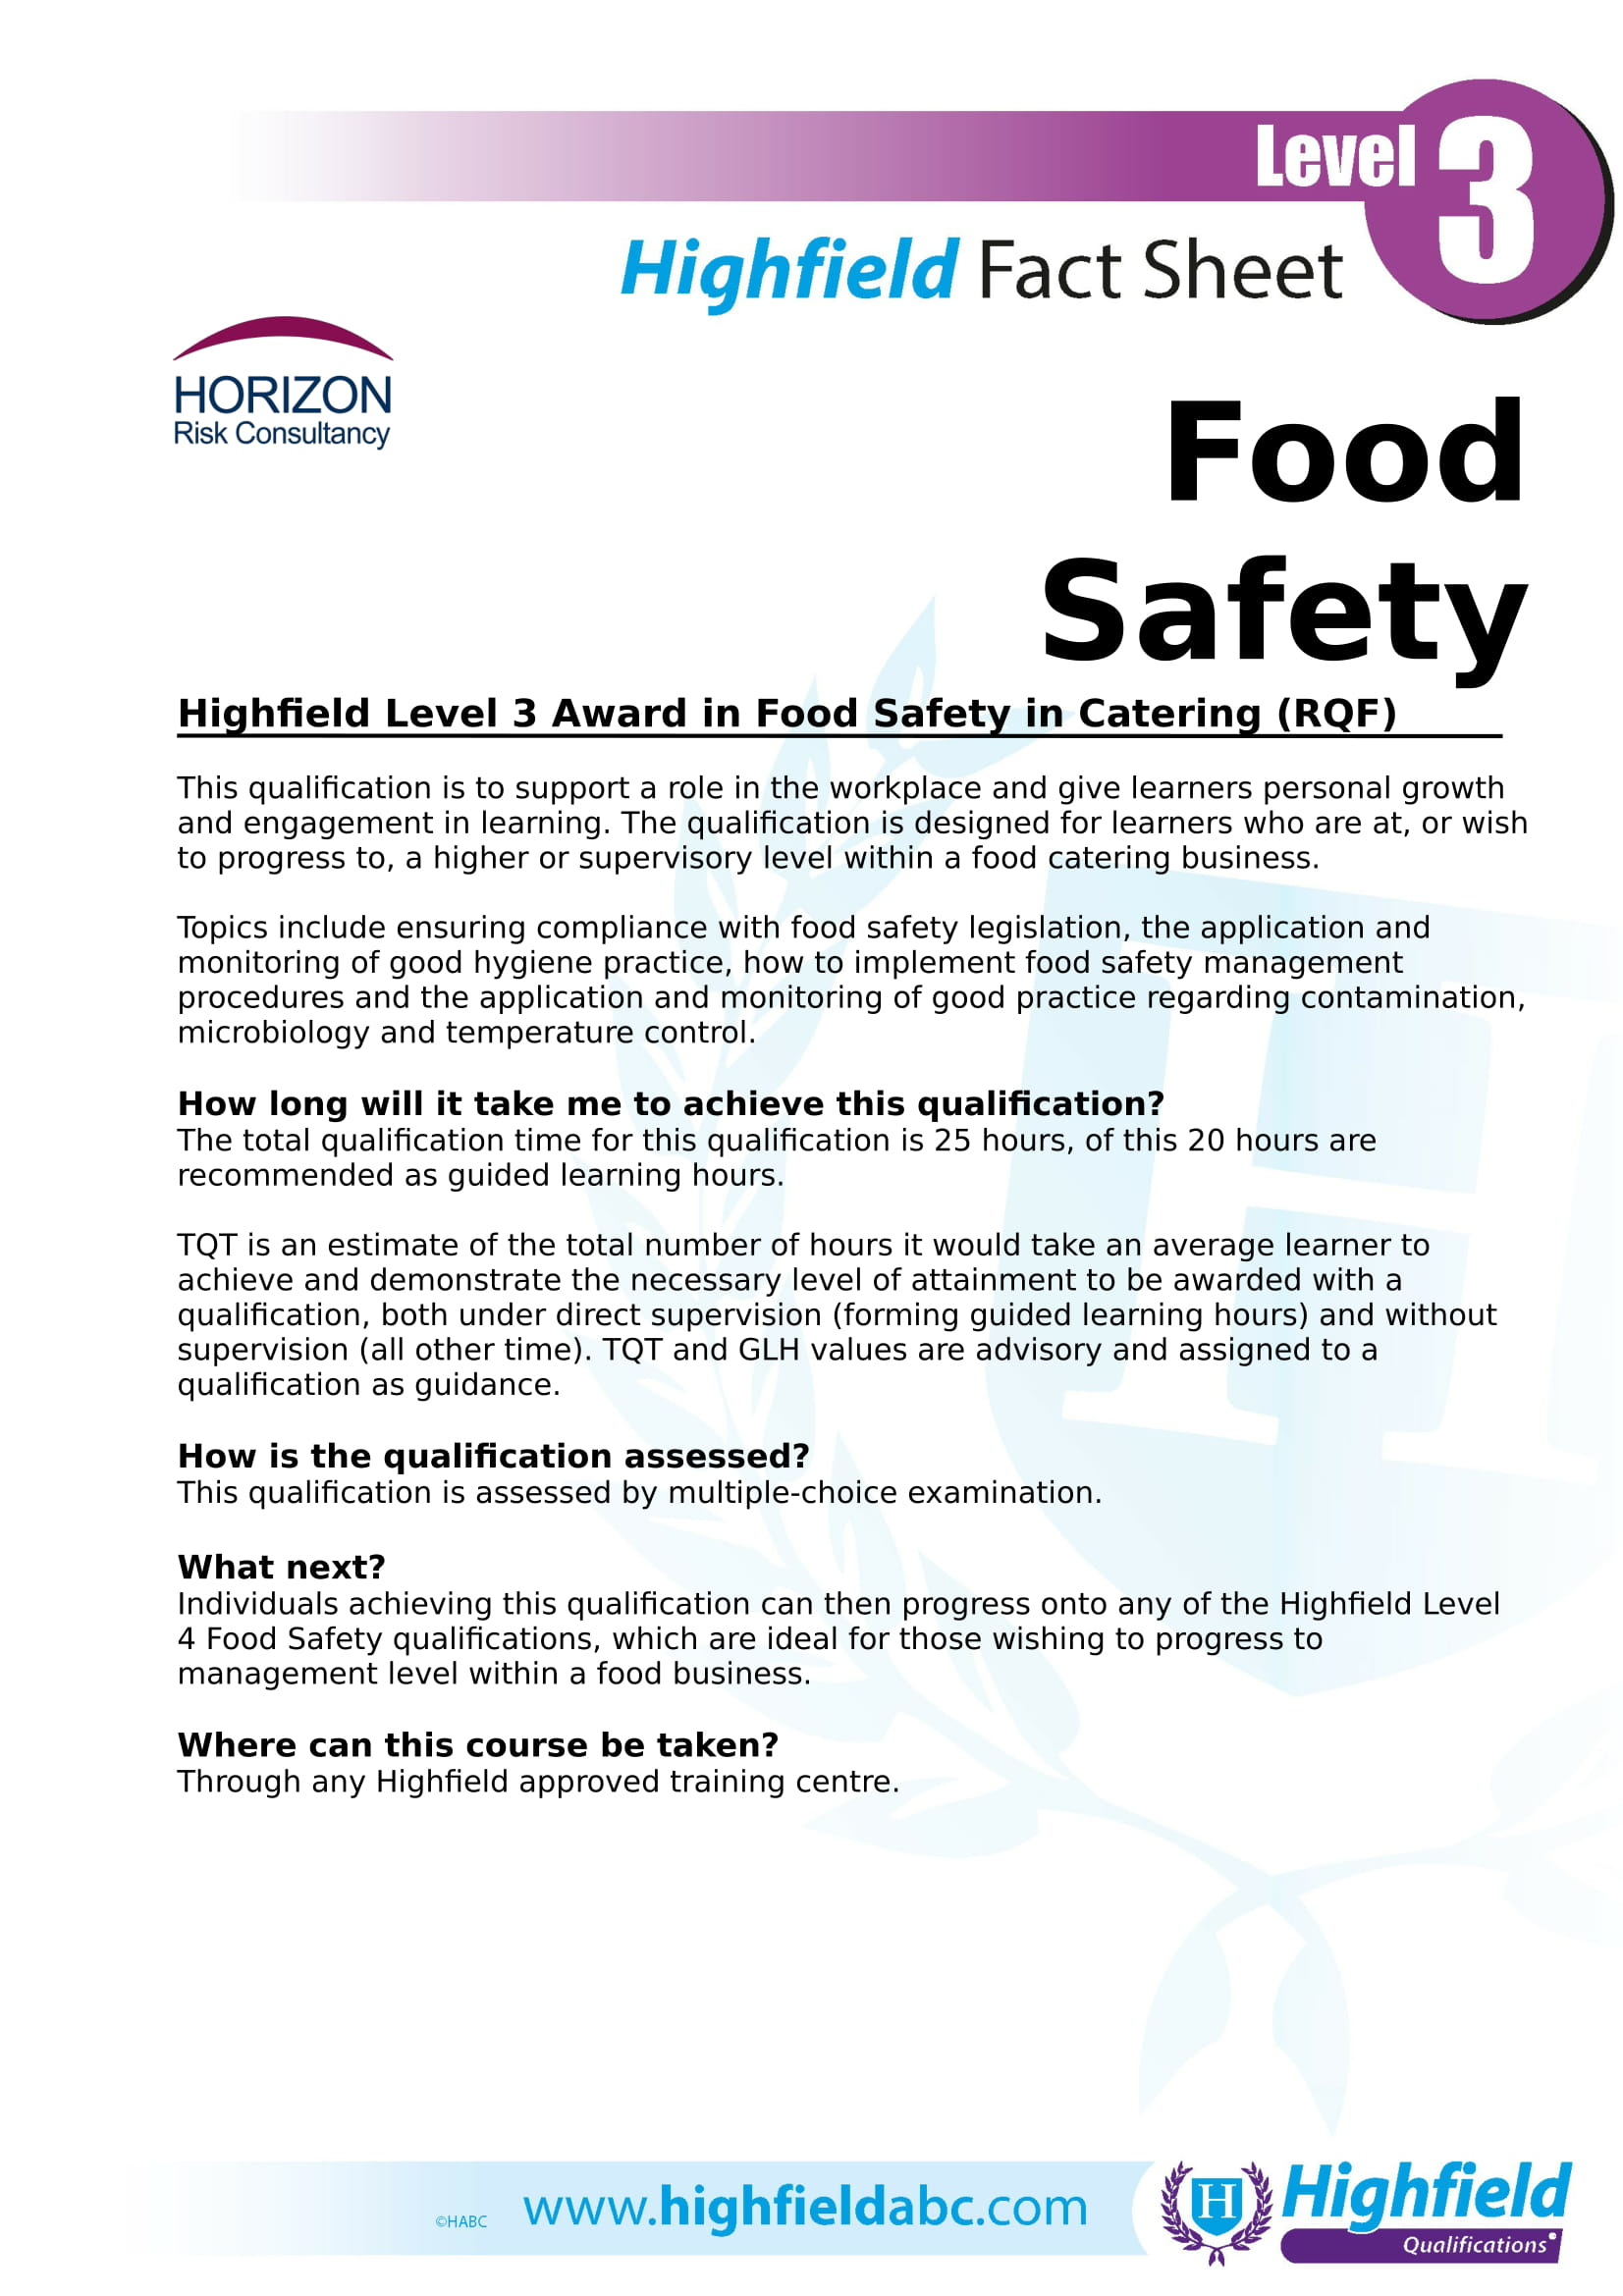 Highfield Level 3 Award in Food Safety in Catering (RQF) - 3M Buckley  Innovation Centre in Huddersfield